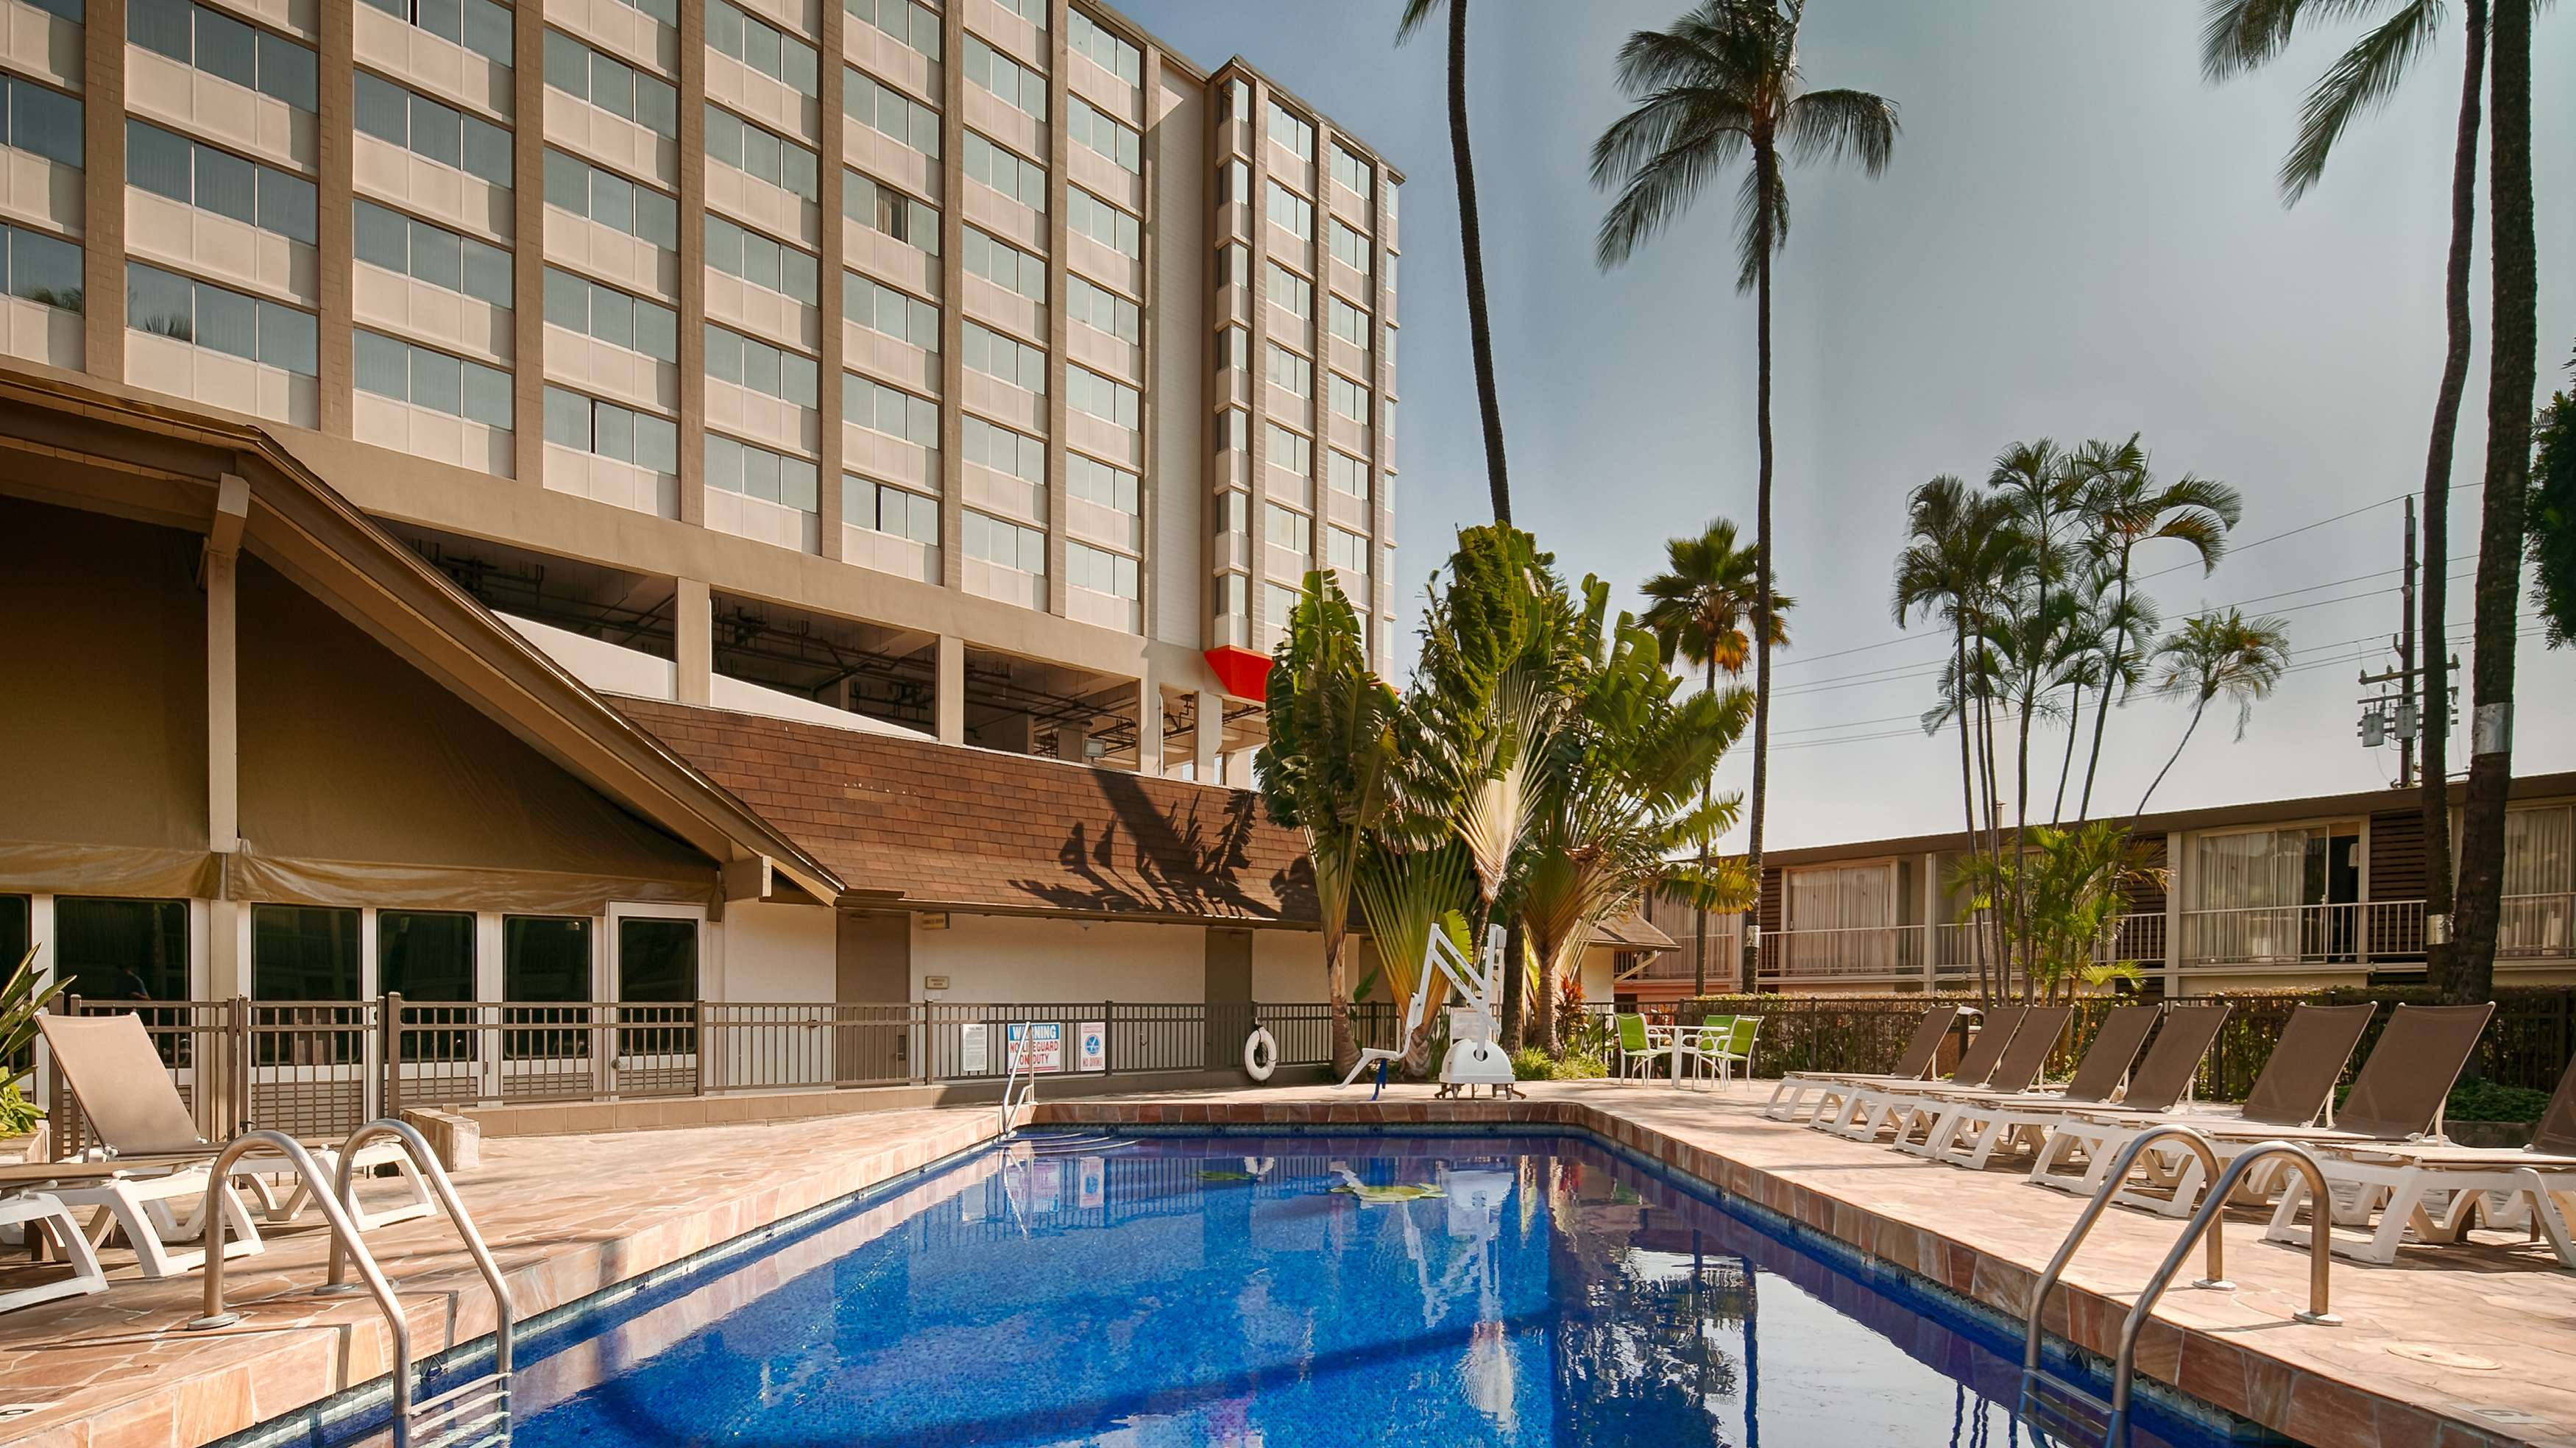 Best Western The Plaza Hotel image 12